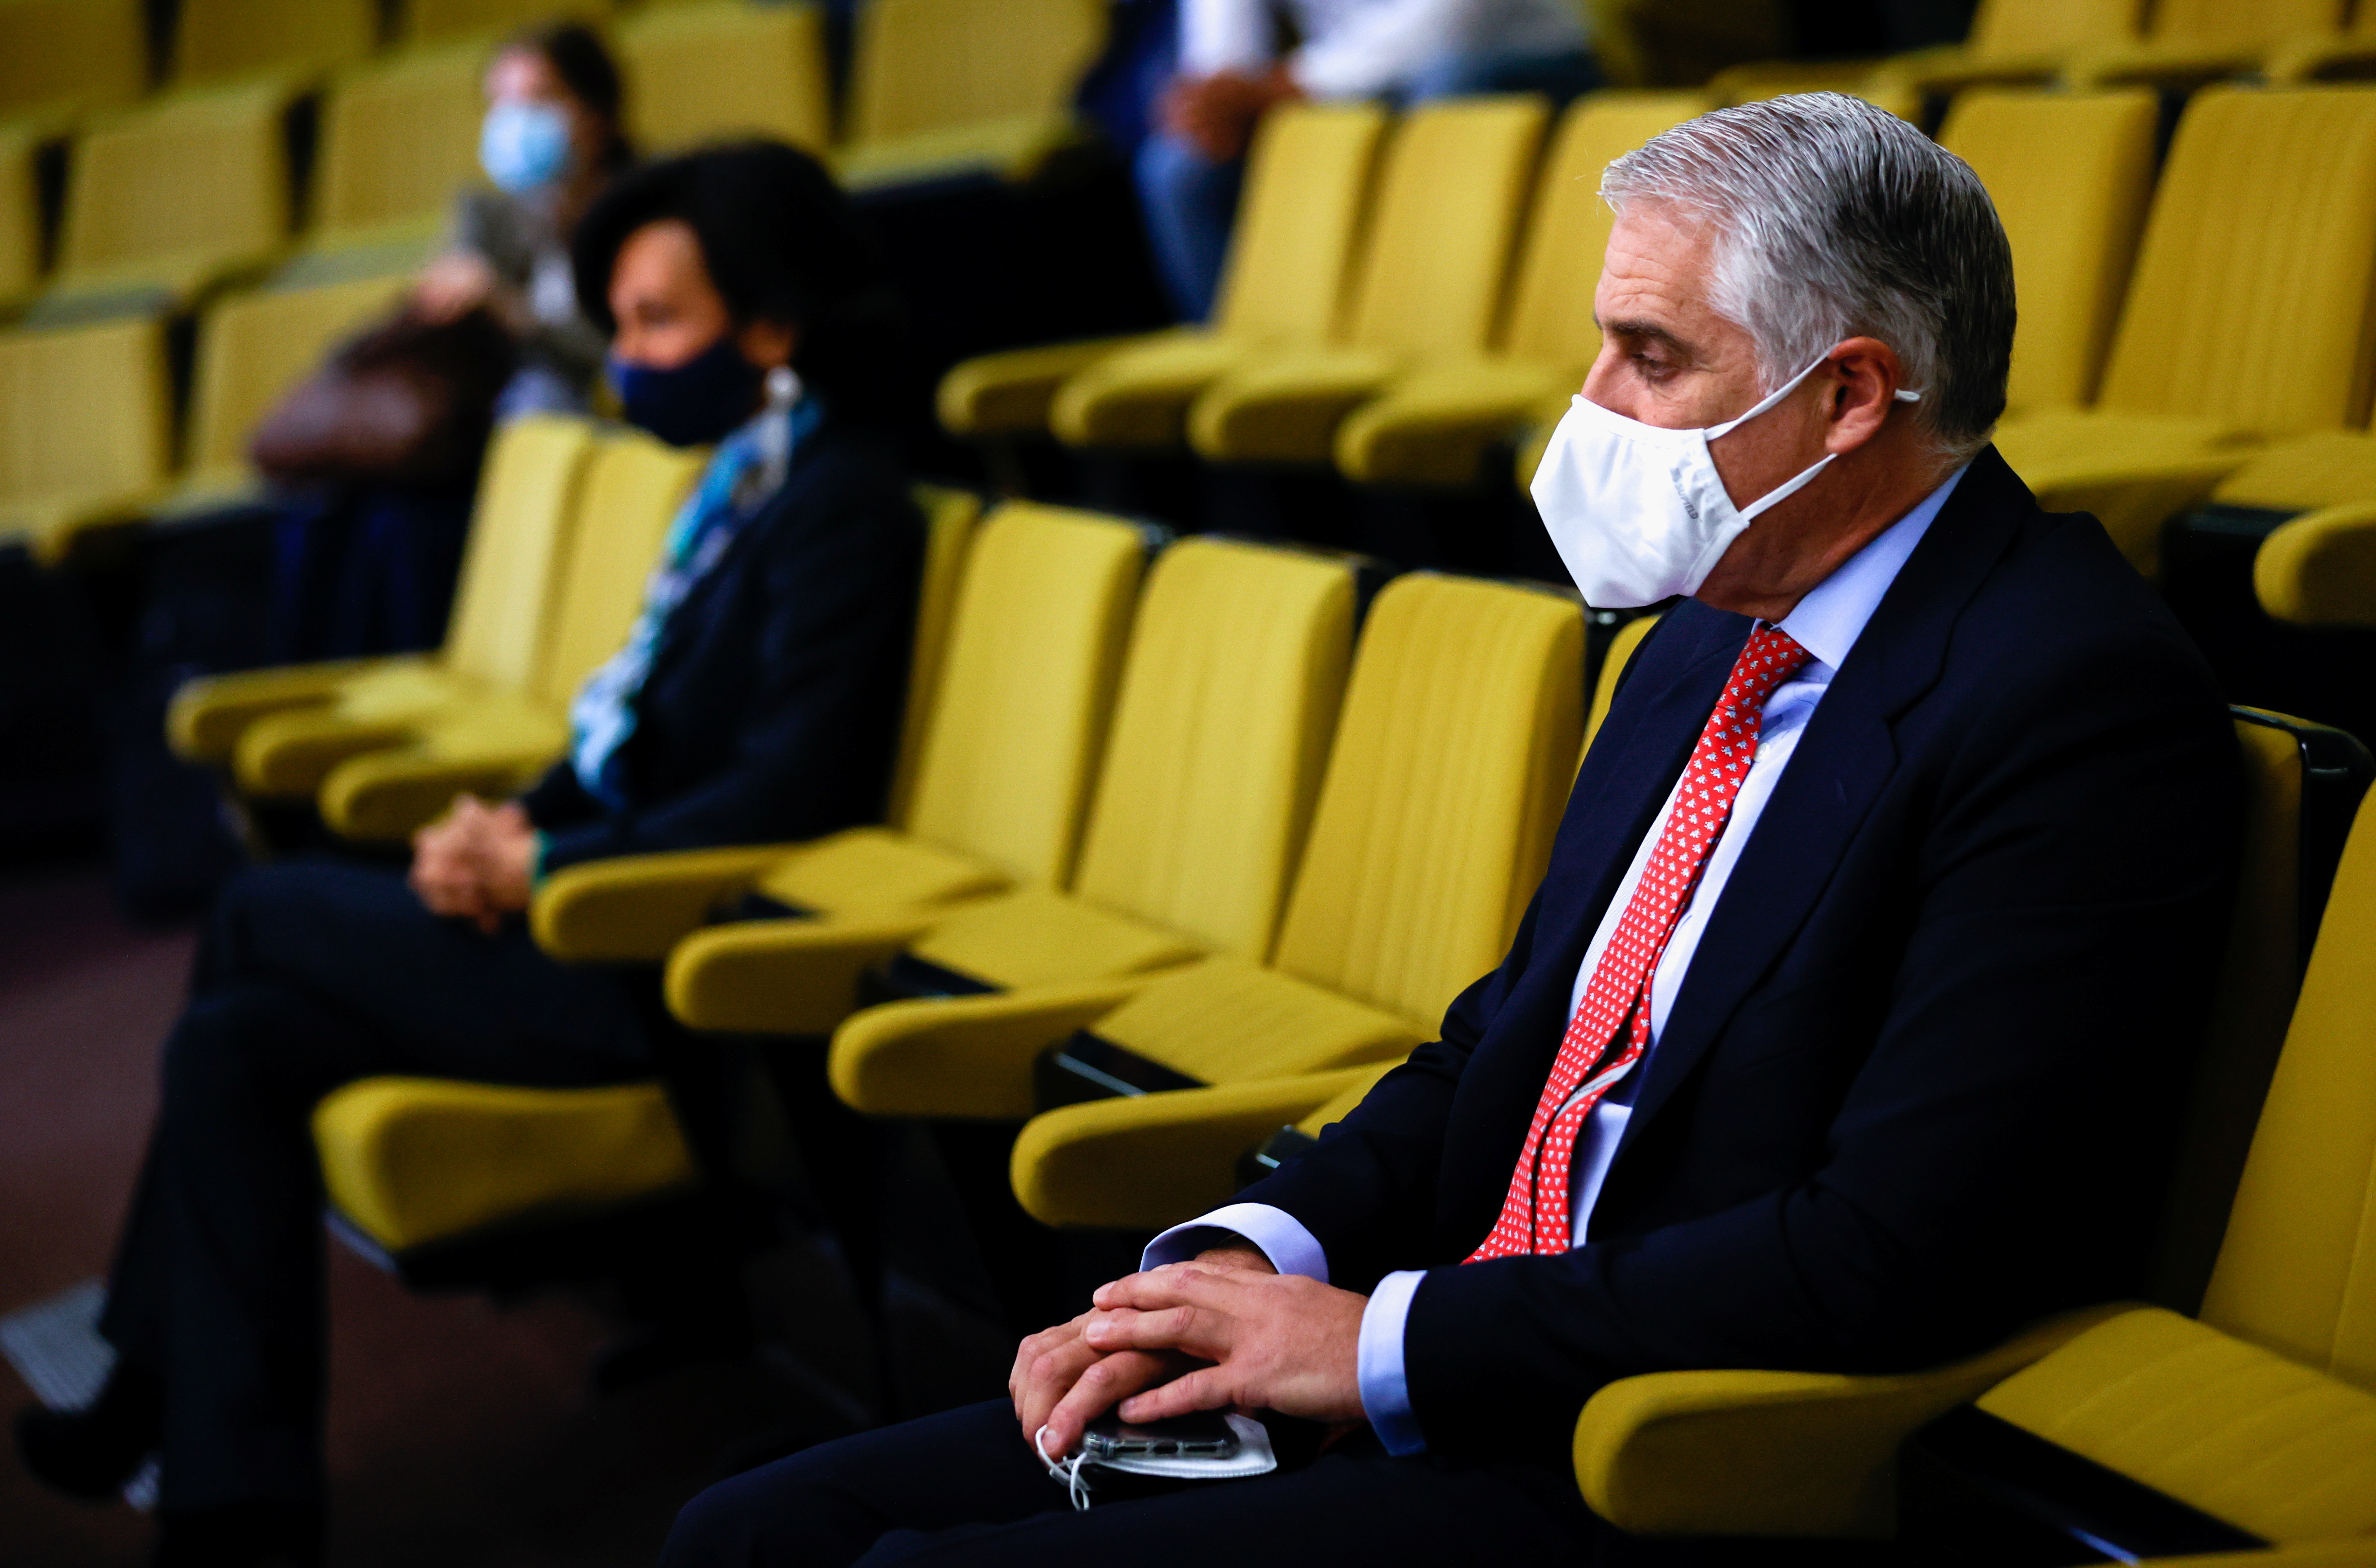 Italian banker Andrea Orcel and Banco Santander's chairwoman Ana Patricia Botin attend a trial against Santander over the bank's withdrawal of a CEO job offer to Orcel, in a high court in Madrid, Spain, May 19, 2021. REUTERS/Juan Medina